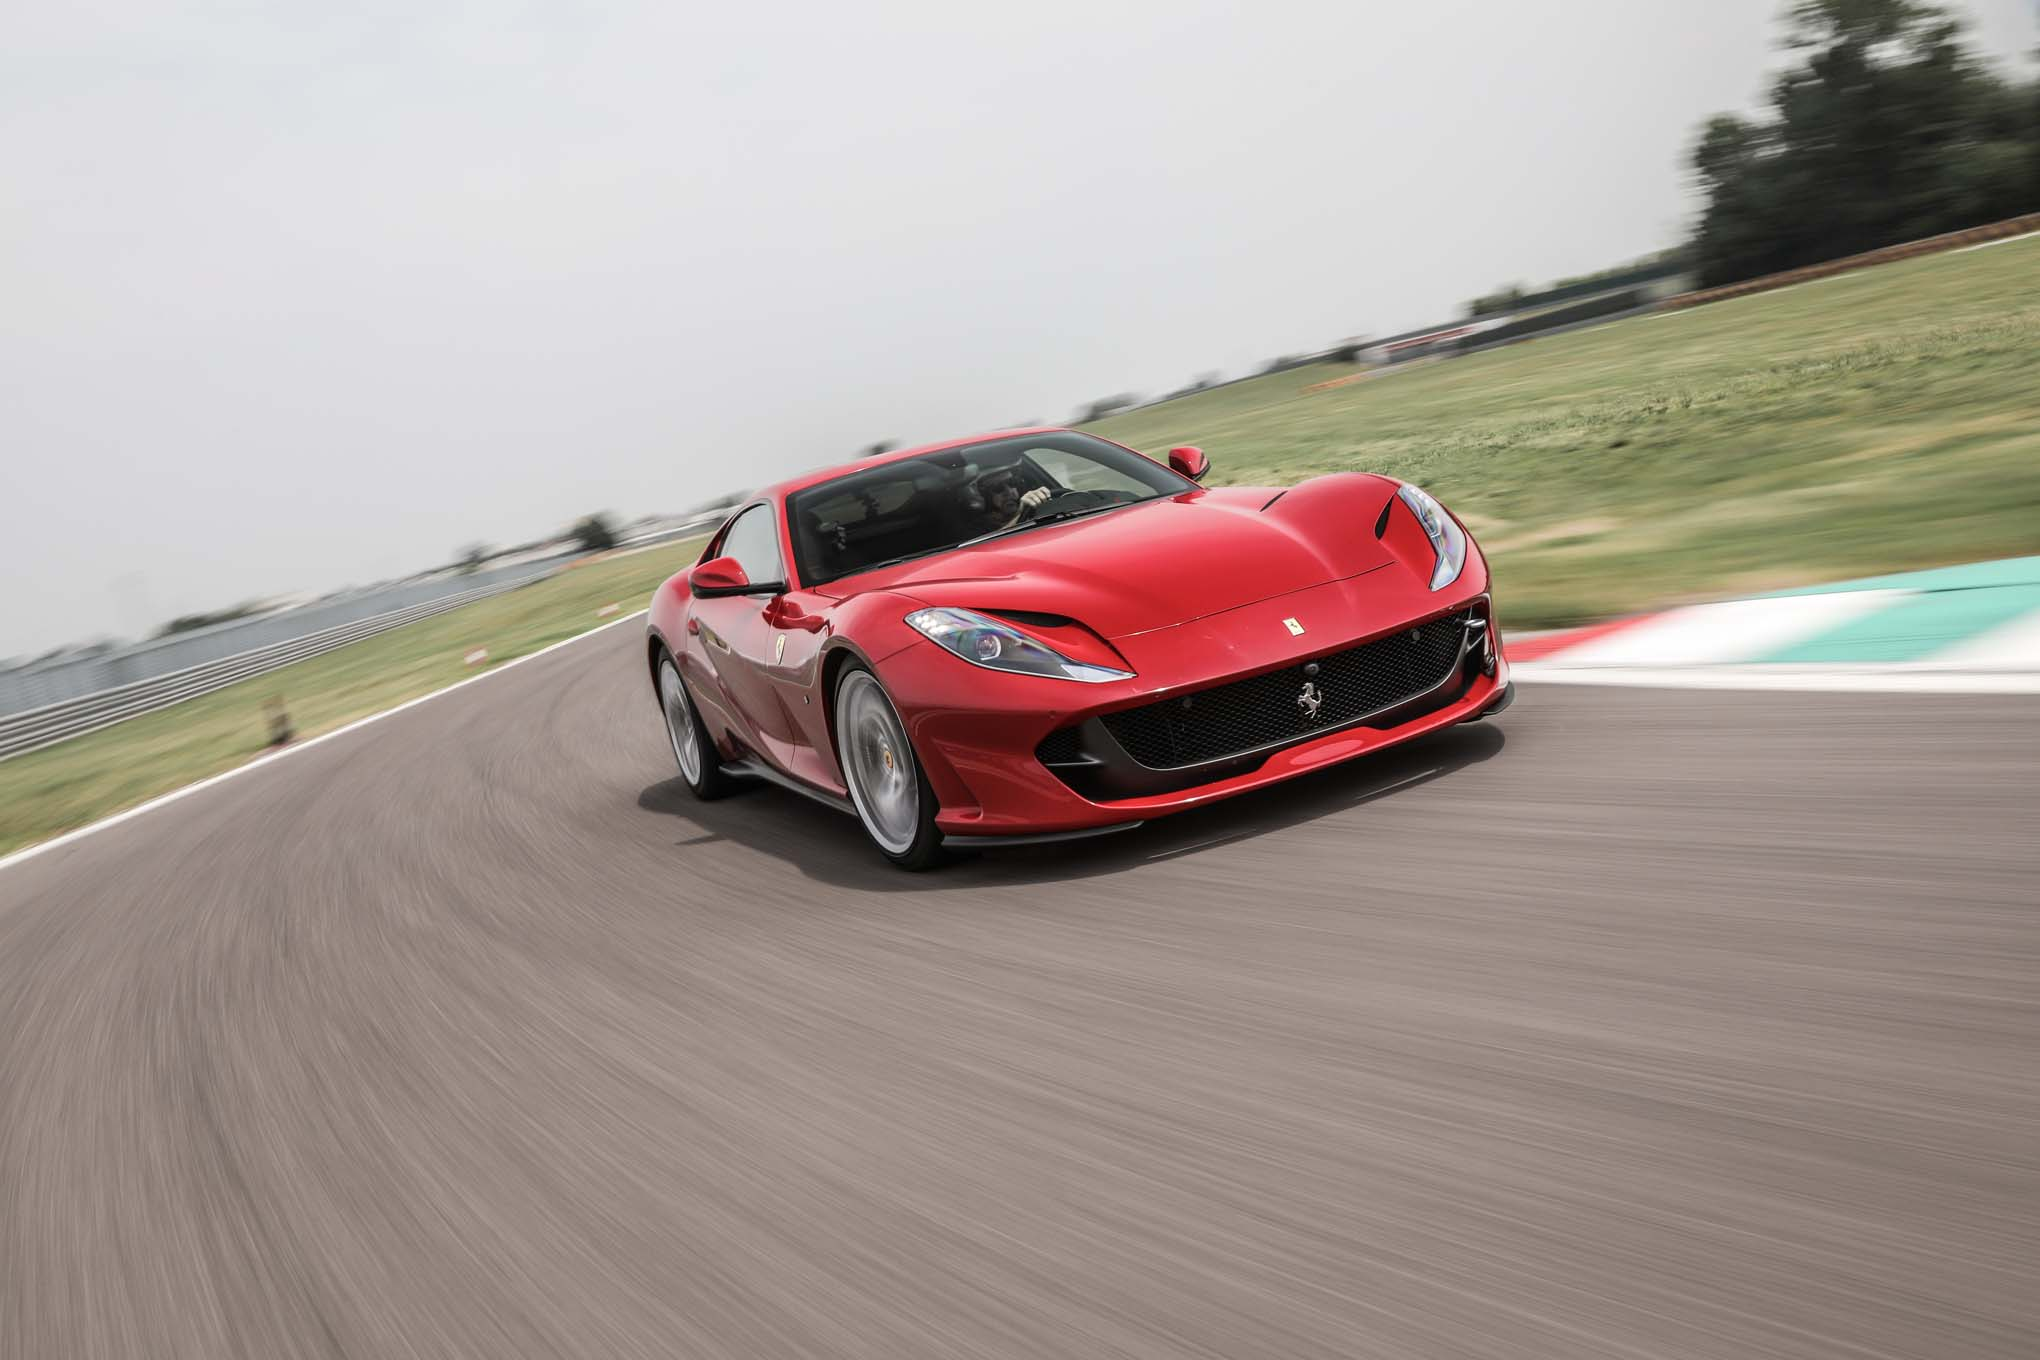 Ferrari 812 Superfast First Drive Review | Automobile Magazine